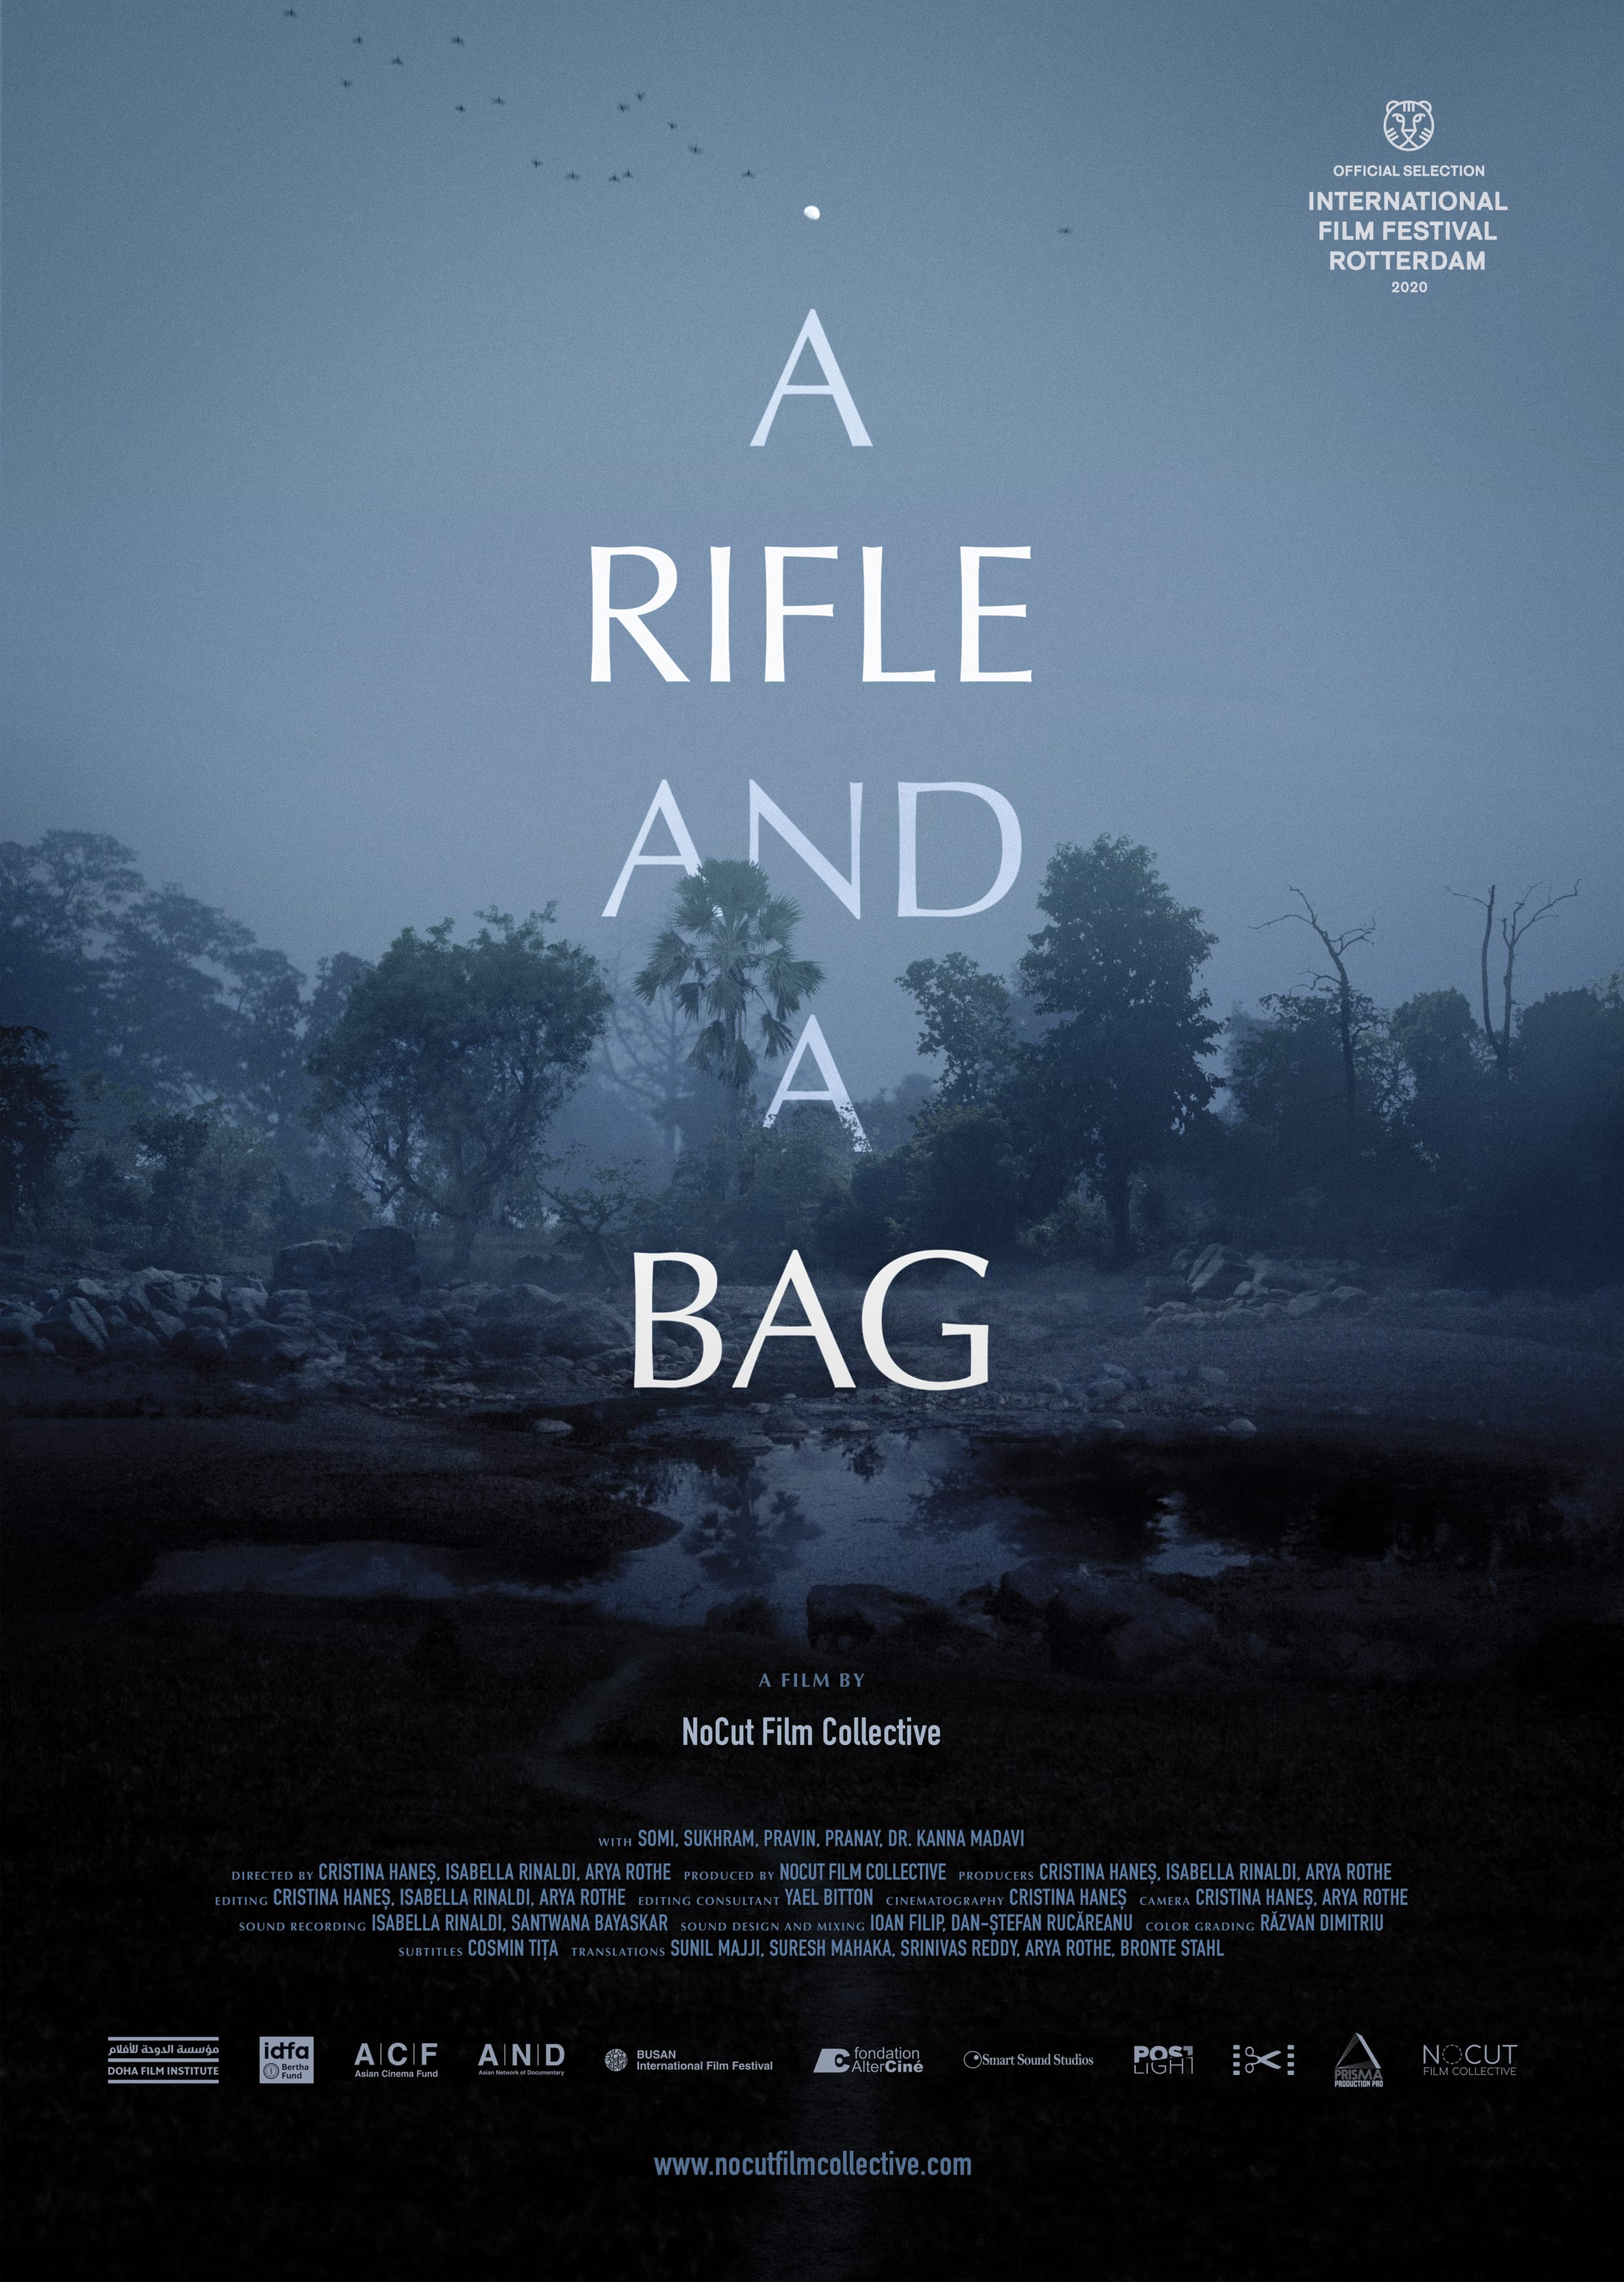 a_rifle_and_a_bag_poster